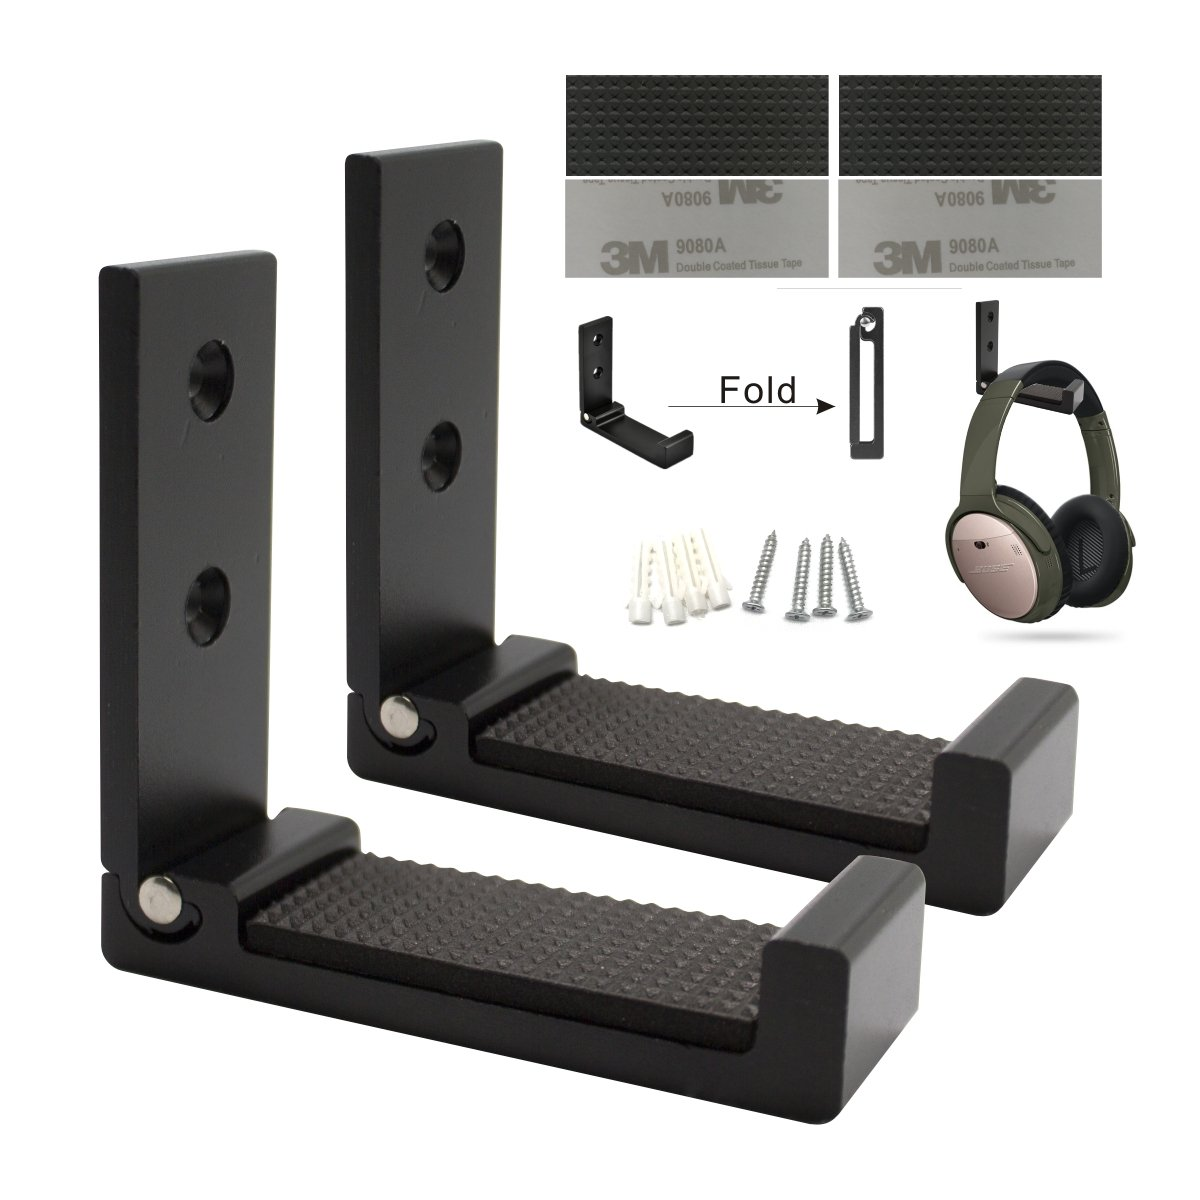 Foldable headphone holder, Aluminum wall mount hook, Hold up to 20KG with screws, 1KG with 3M Adhesive(2p black)